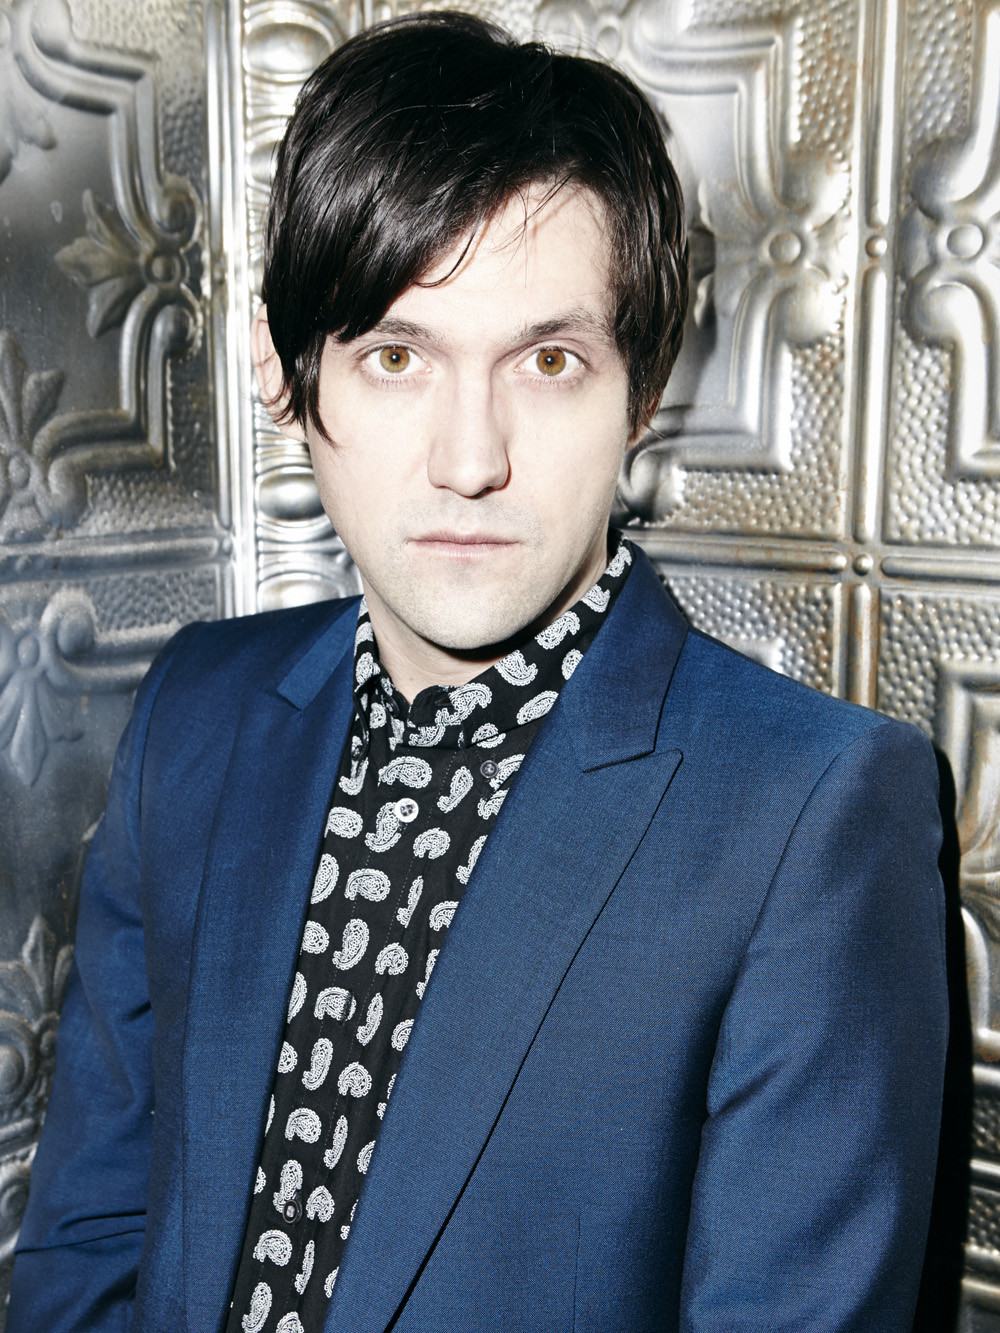 conoroberst